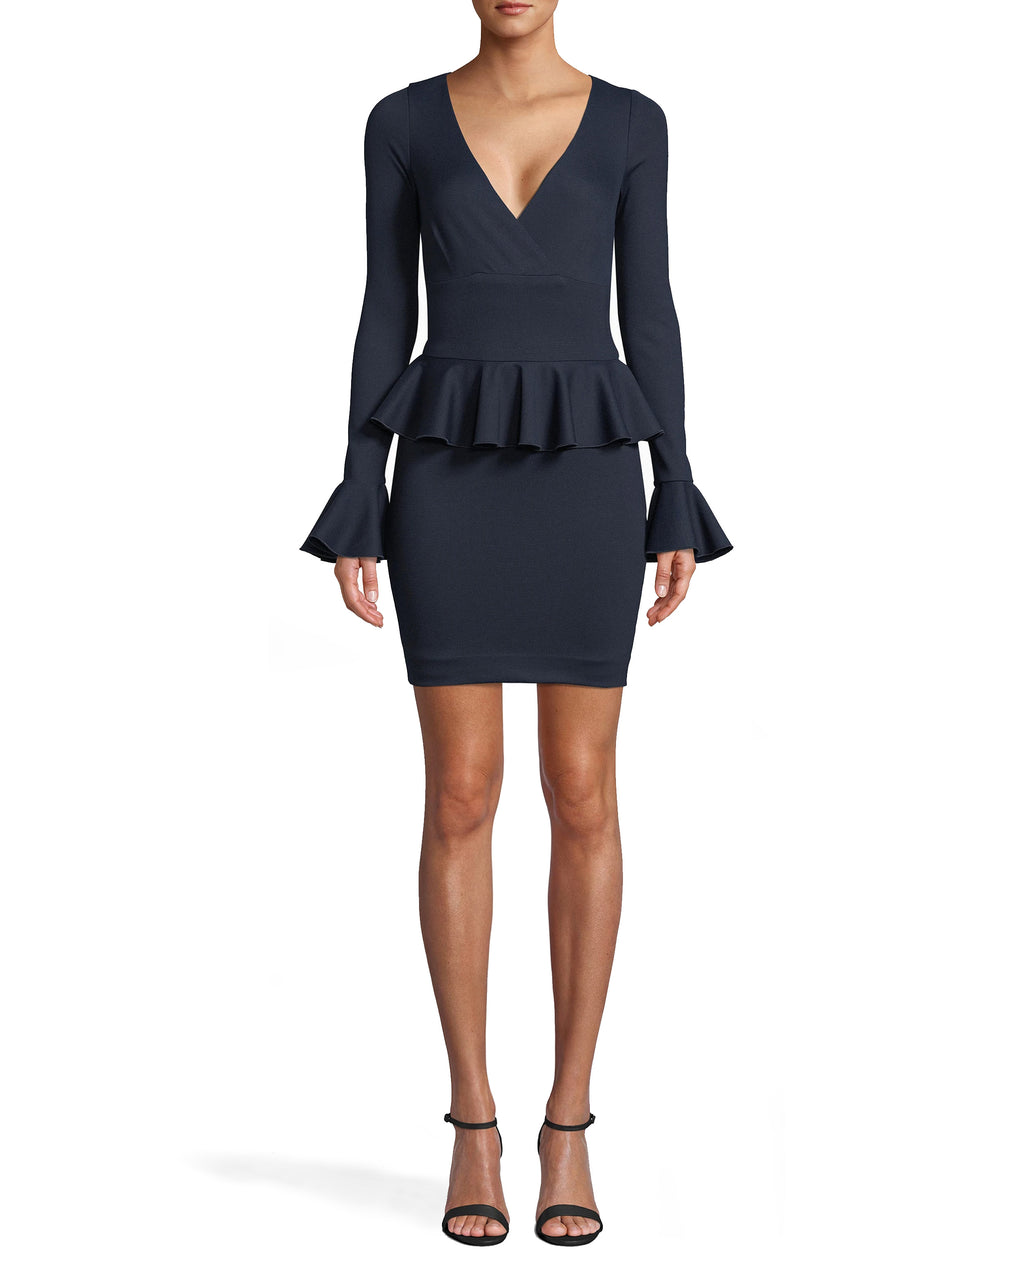 BH20129 - PONTE PEPLUM DRESS - dresses - short - PARTY IN PEPLUM. FEATURING A DEEP V-NECK, FLATTERING PEPLUM RUFFLE AT THE WAIST AND FLARED SLEEVES, THIS DRESS IS FOREVER VERSATILE BUT NEVER BORING. PAIR WITH HEELS AND A STANDOUT CLUTCH. CONCEALED SIDE ZIPPER.